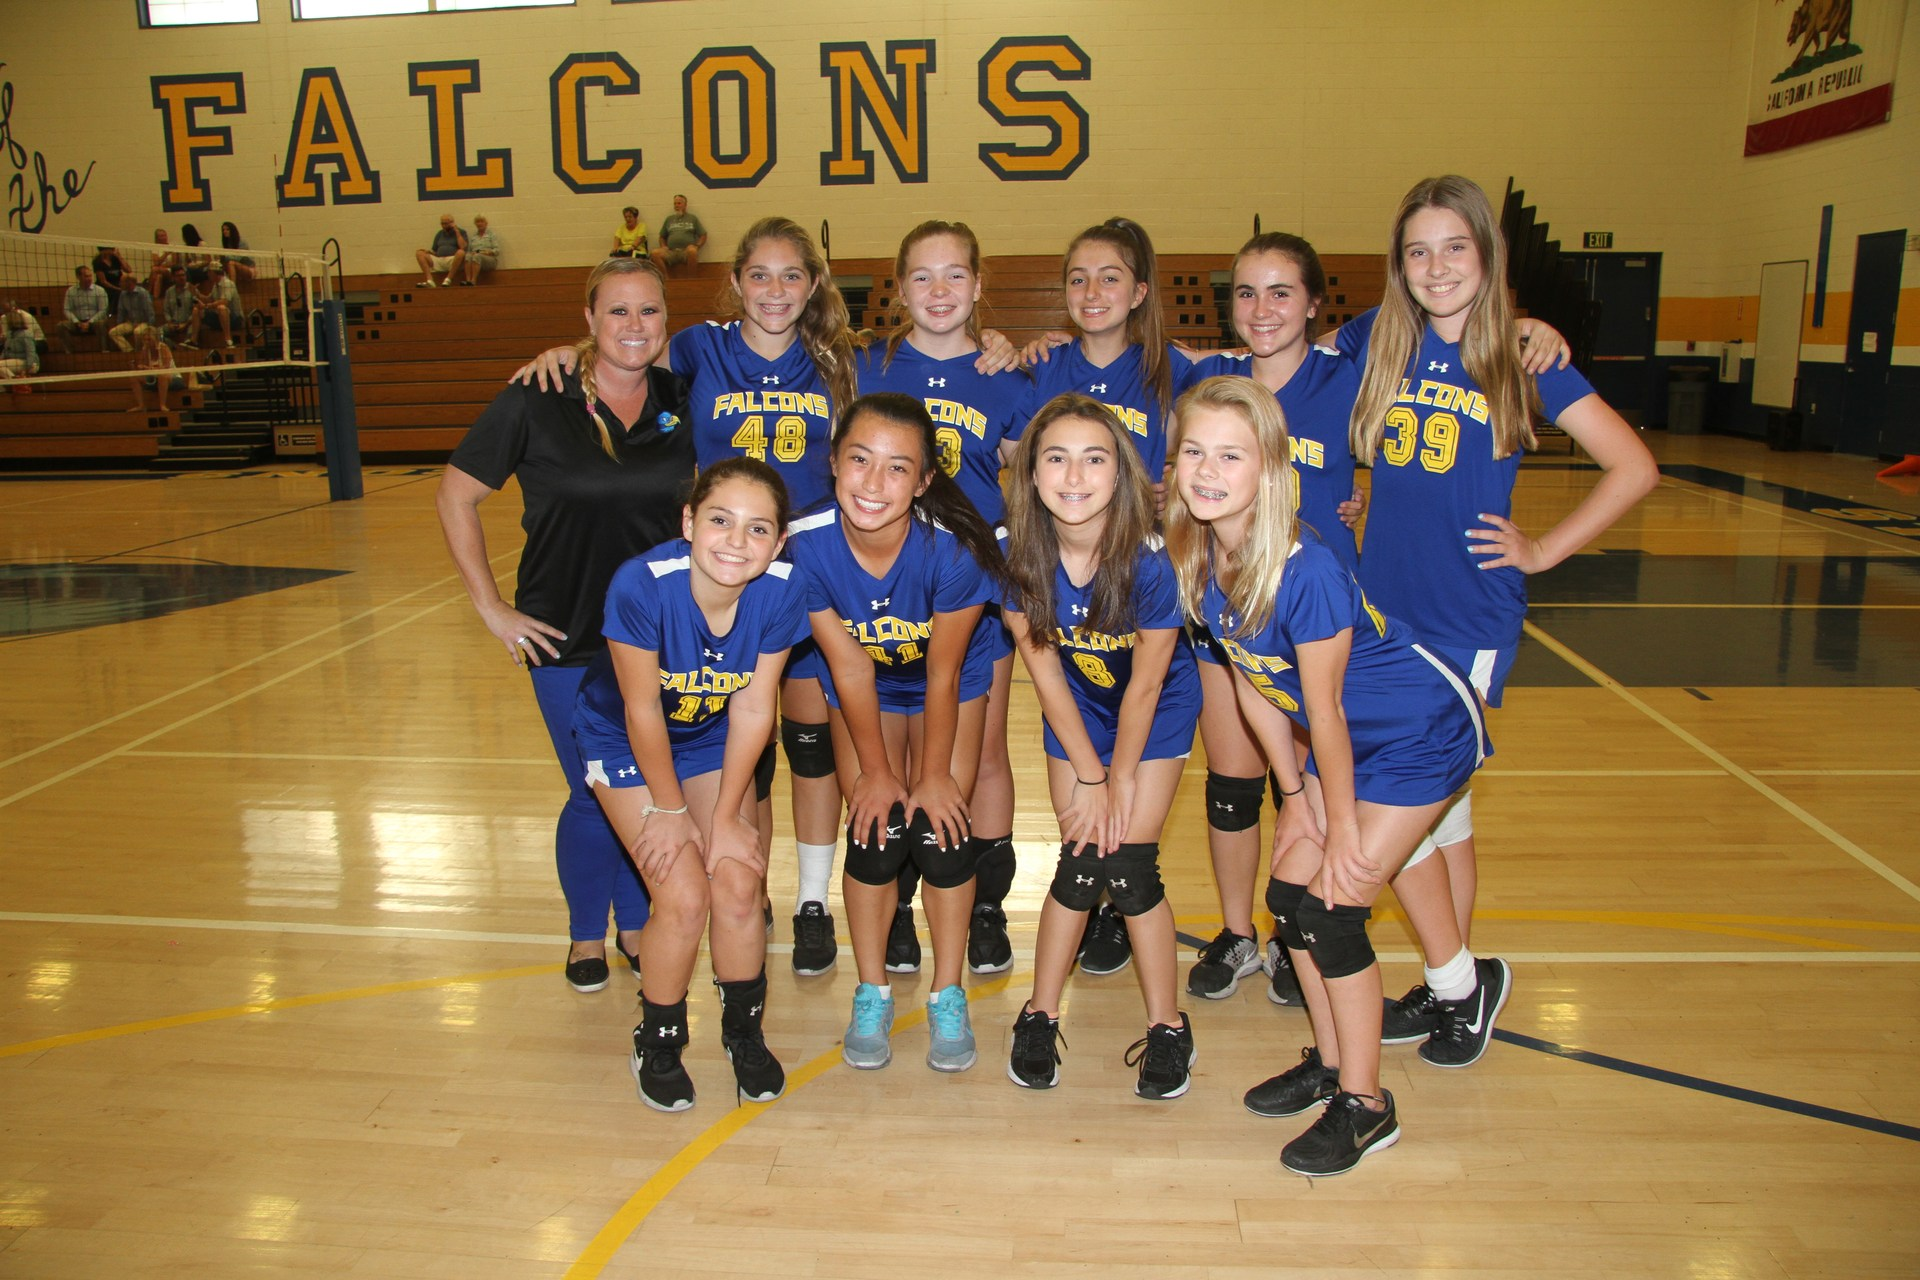 team photo of canyon A girls volleyball